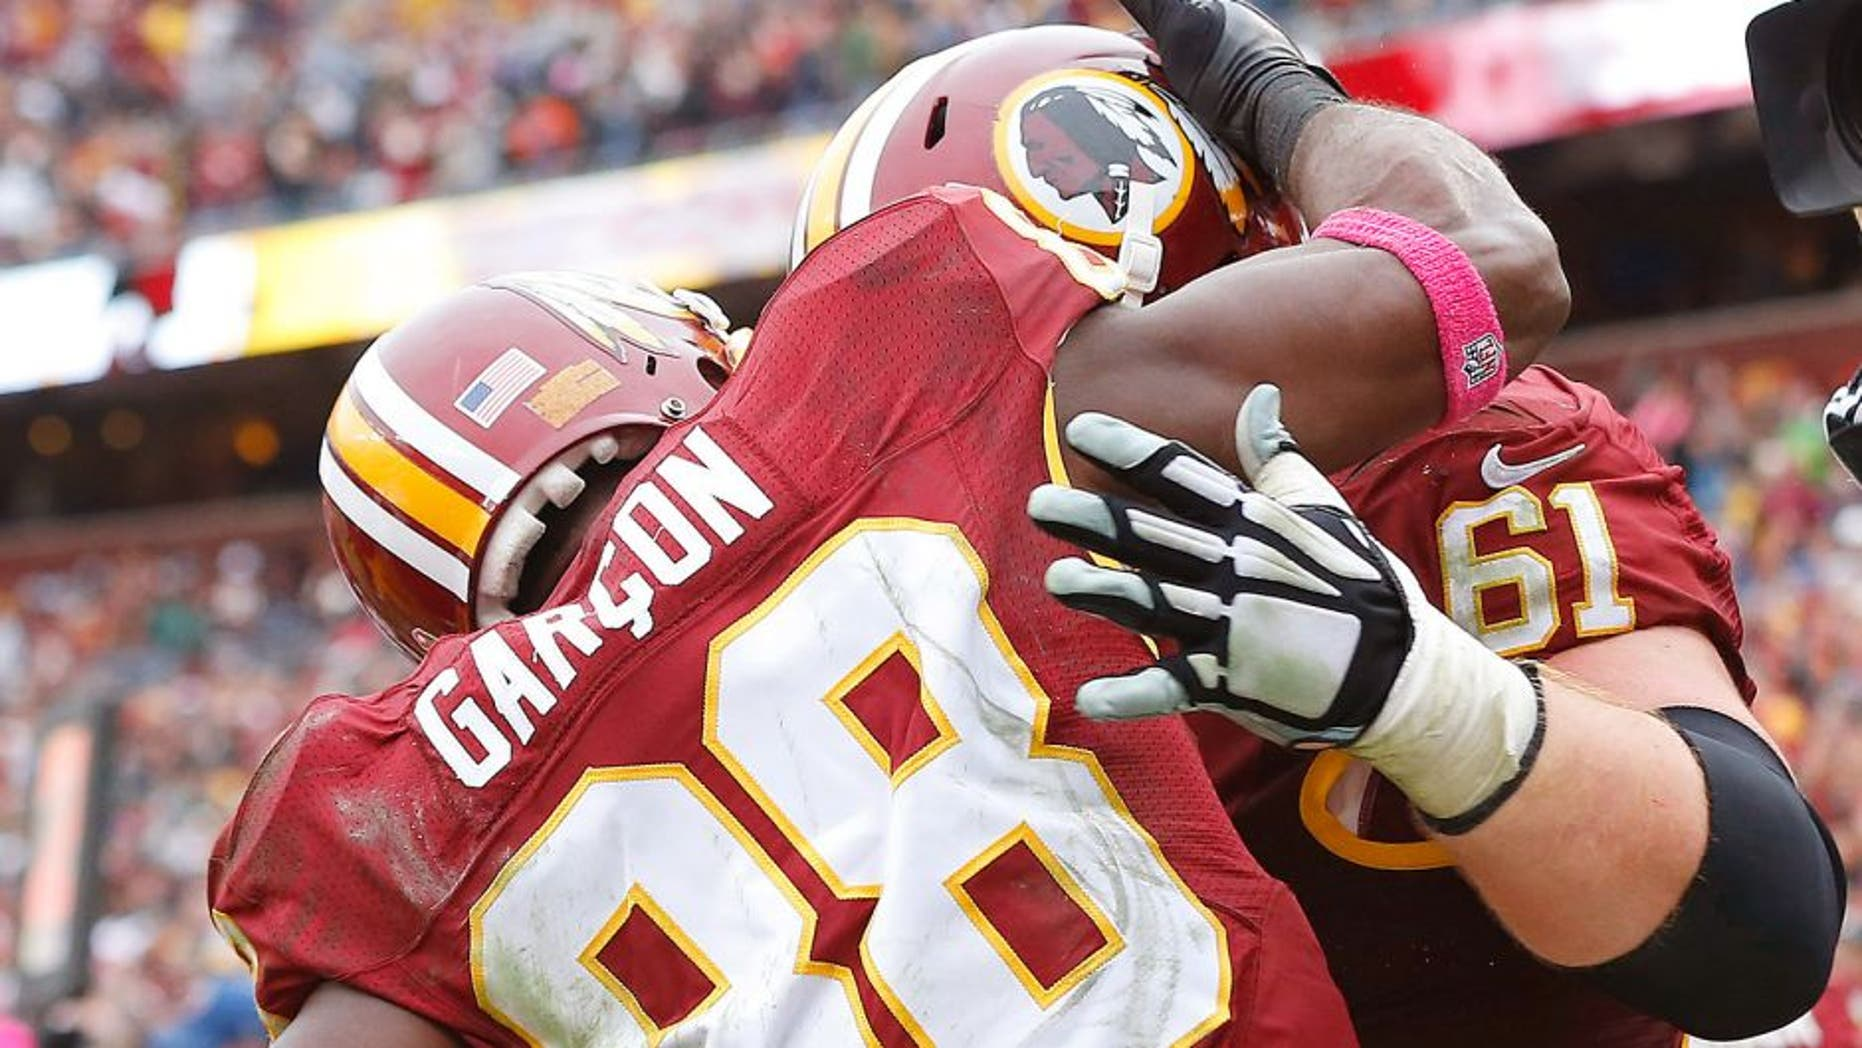 Oct 4, 2015; Landover, MD, USA; Washington Redskins wide receiver Pierre Garcon (88) celebrates with Redskins guard Spencer Long (61) after catching the game winning touchdown pass against the Philadelphia Eagles in the closing seconds of the fourth quarter at FedEx Field. The Redskins won 23-20. Mandatory Credit: Geoff Burke-USA TODAY Sports